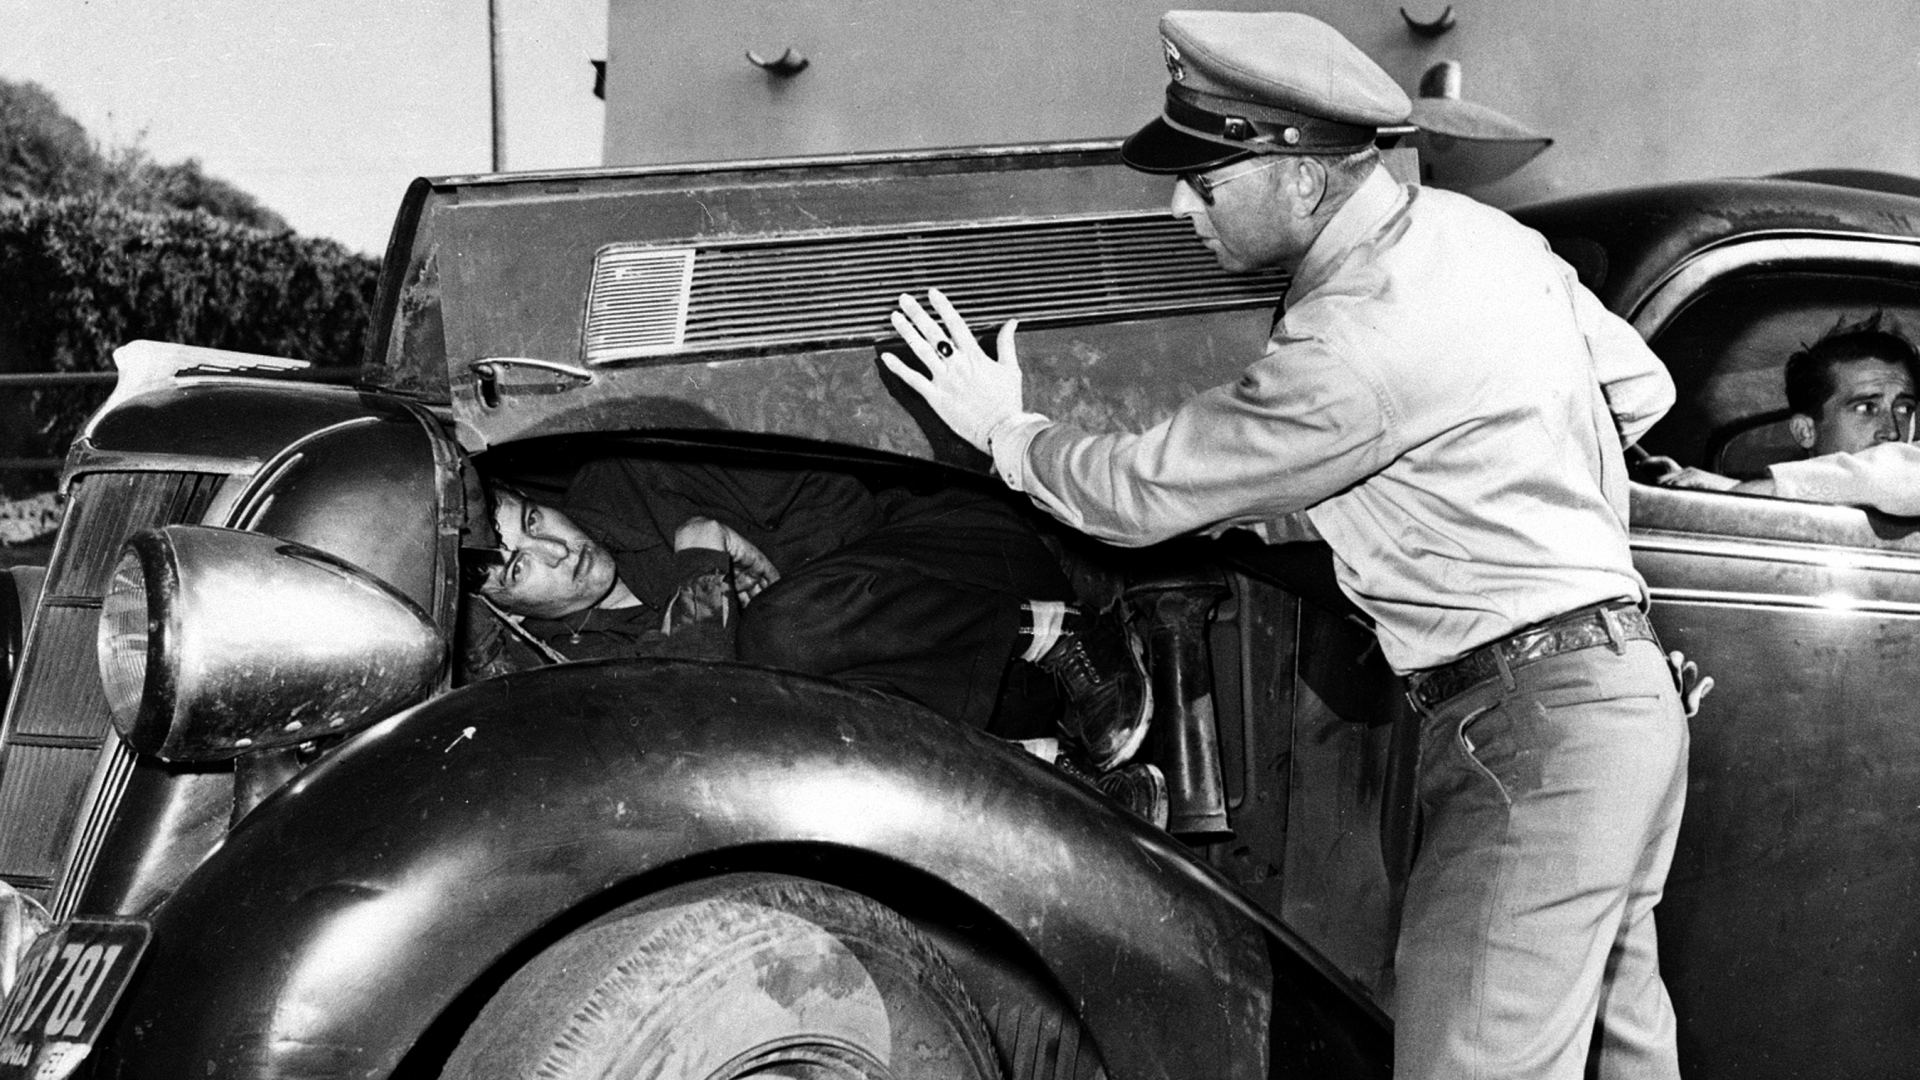 U.S. Border Patrol officer Richard McCown shows how he found Felipe Ramirez Perez, a 6-foot illegal Mexican immigrant, curled up on the engine beneath the hood of this automobile, at the U.S.-Mexican border at San Diego, Calif., March 15, 1954. Perez is held for illegal entry, awaiting deportation, and Felix Mercado Gutierrez, the driver of the car, is charged with attempt to smuggle Perez into the United States. (AP Photo)